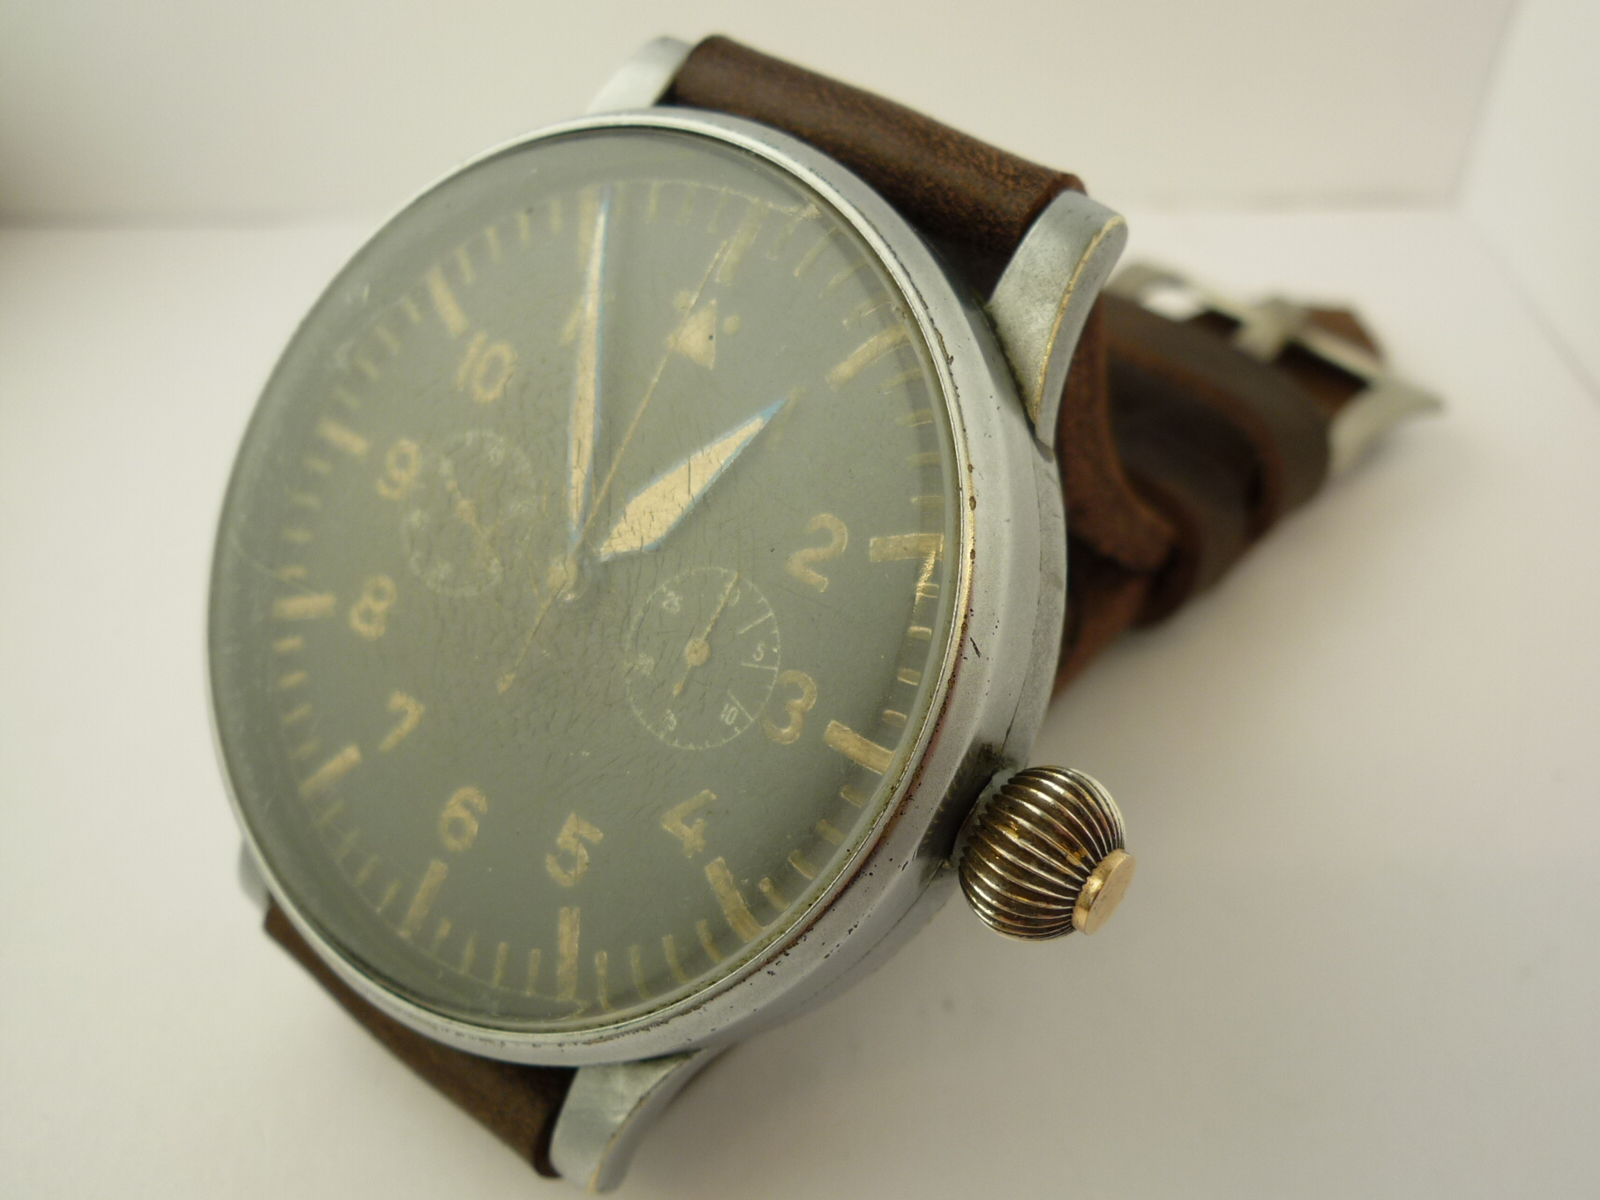 World War II German Navigators Watch-Wempe Valjoux 61